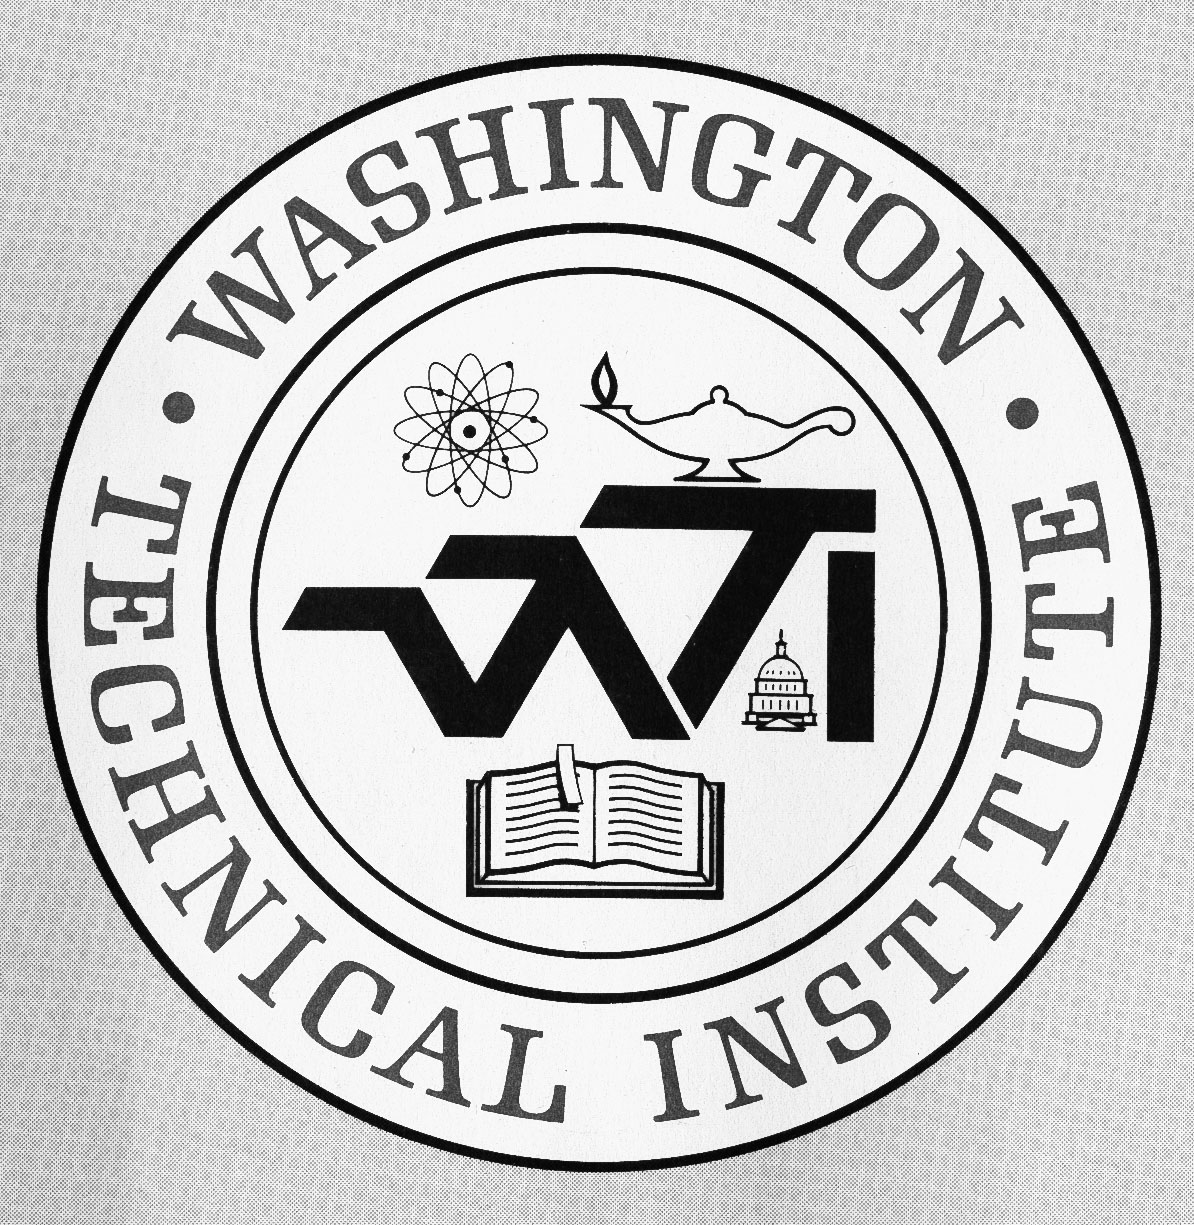 Washington Technical Institute -- First College Seal